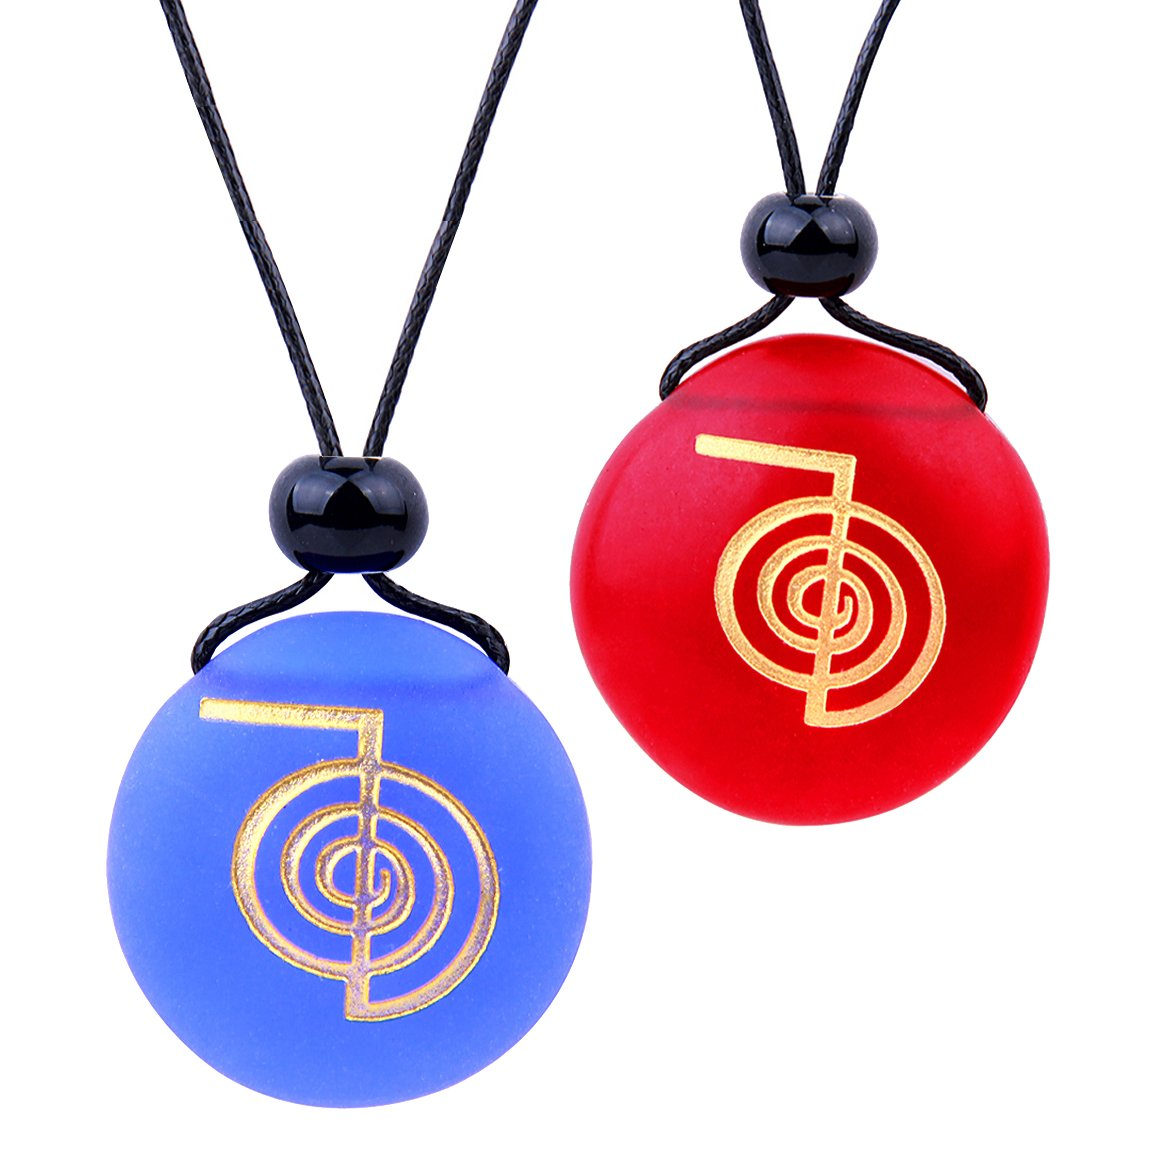 Frosted Sea Glass Stones Choku Rei Reiki Energy Love Couples BFF Set Amulets Royal Blue Red Necklaces